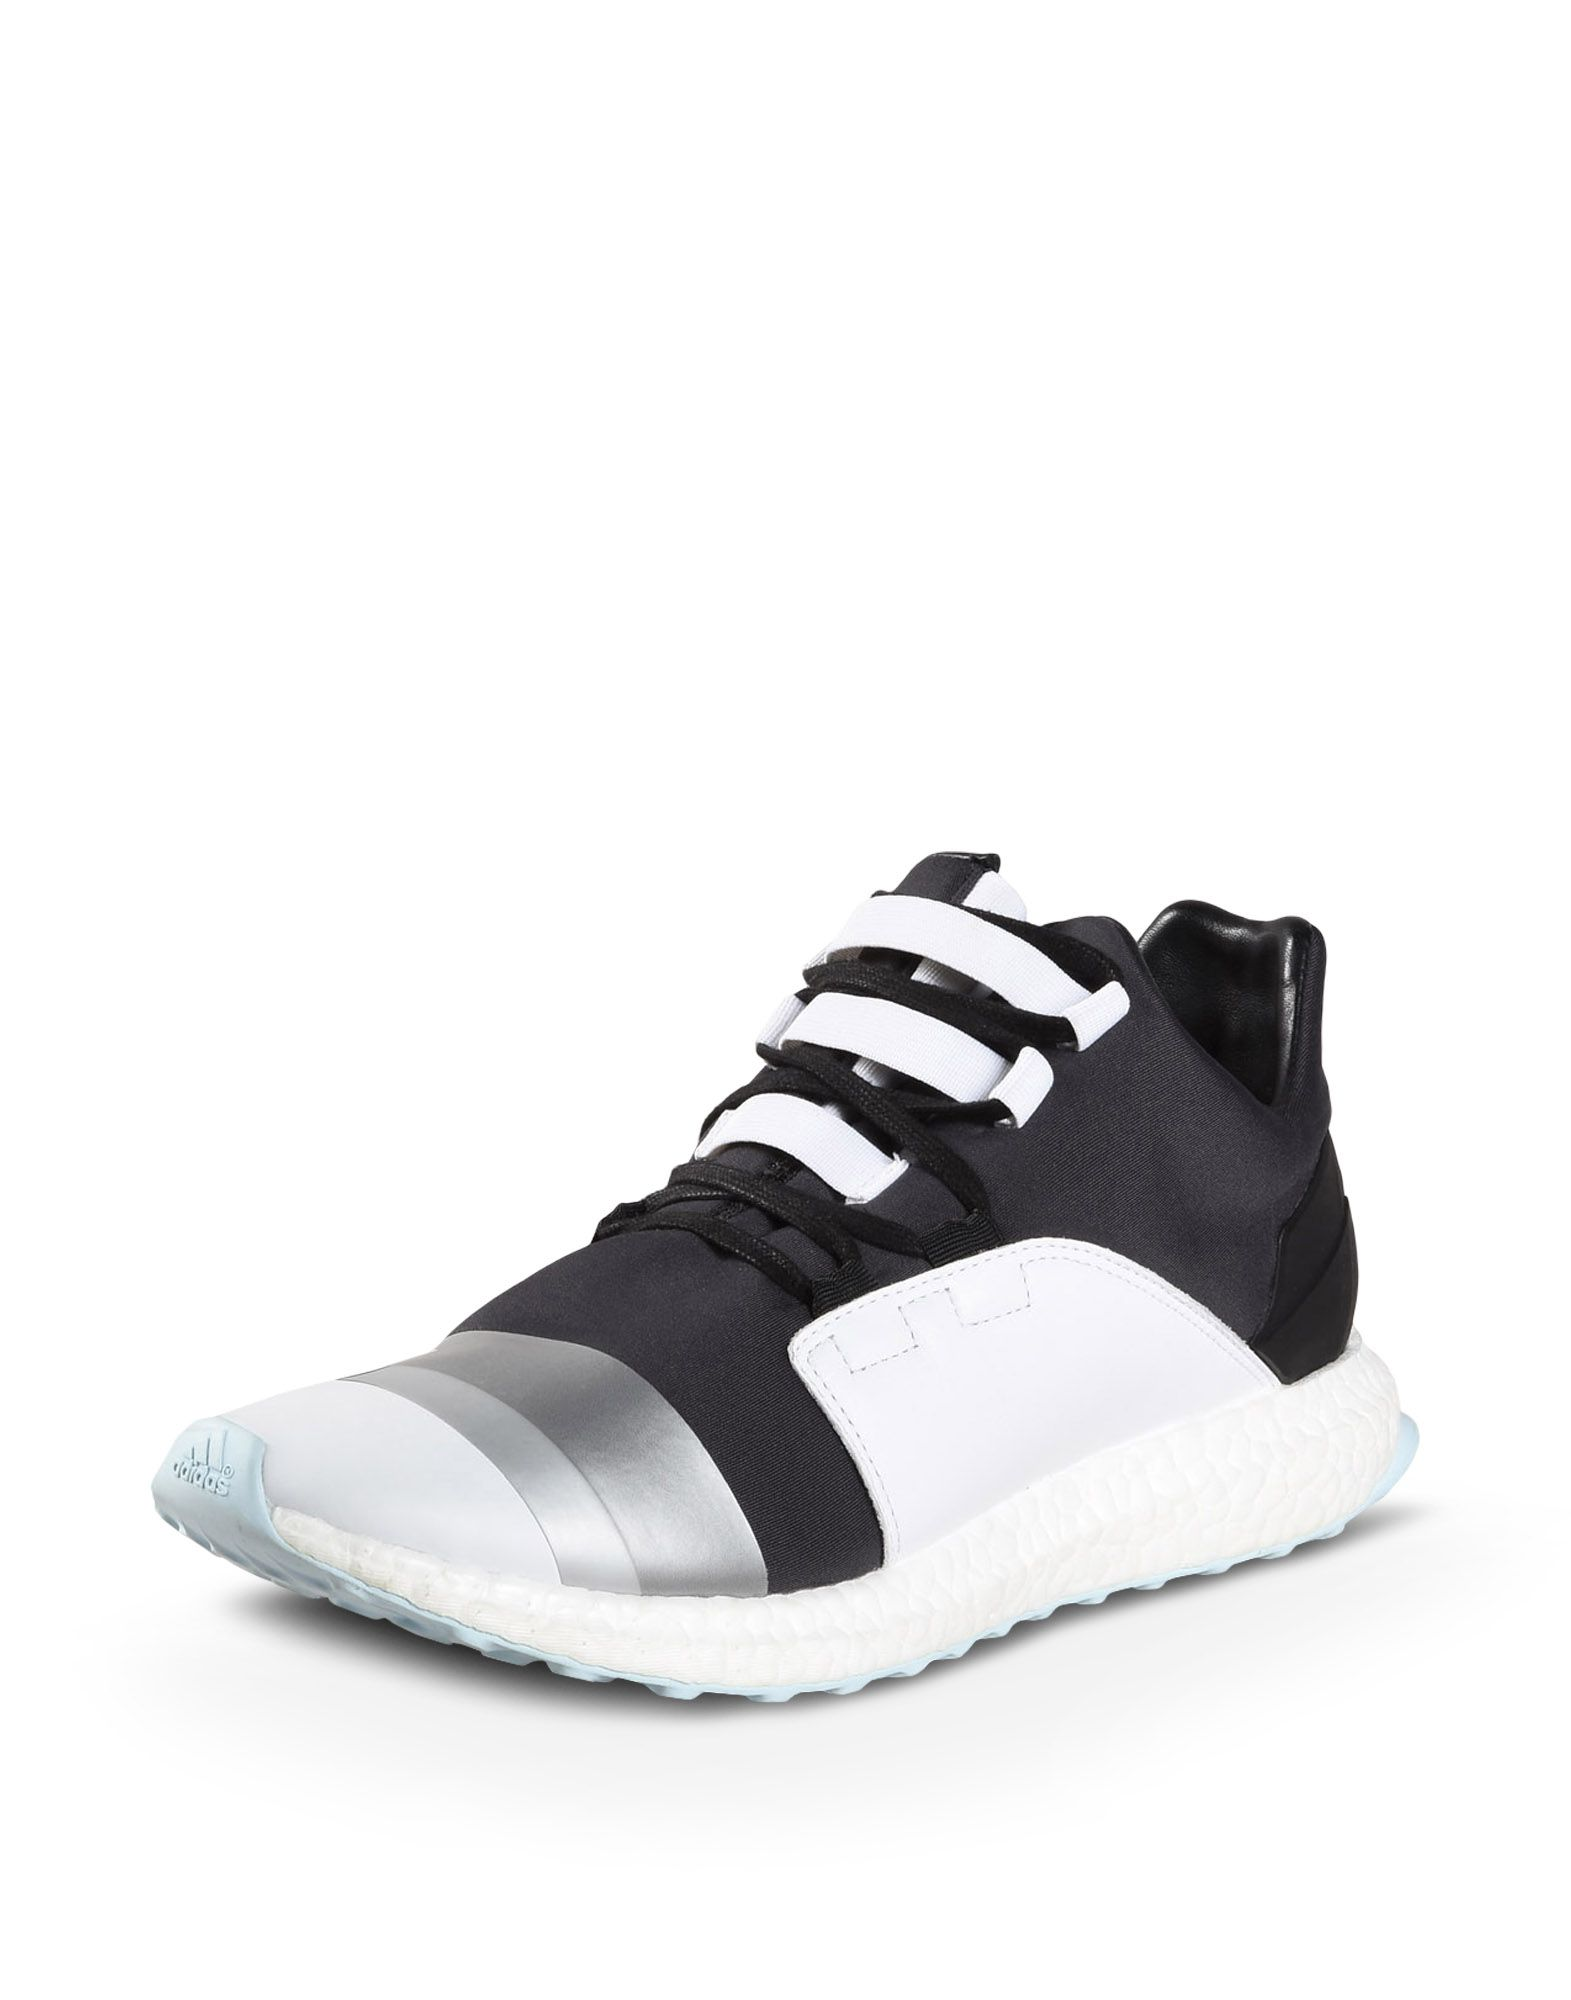 Y-3 Kozoko sneakers free shipping Inexpensive hbFNp